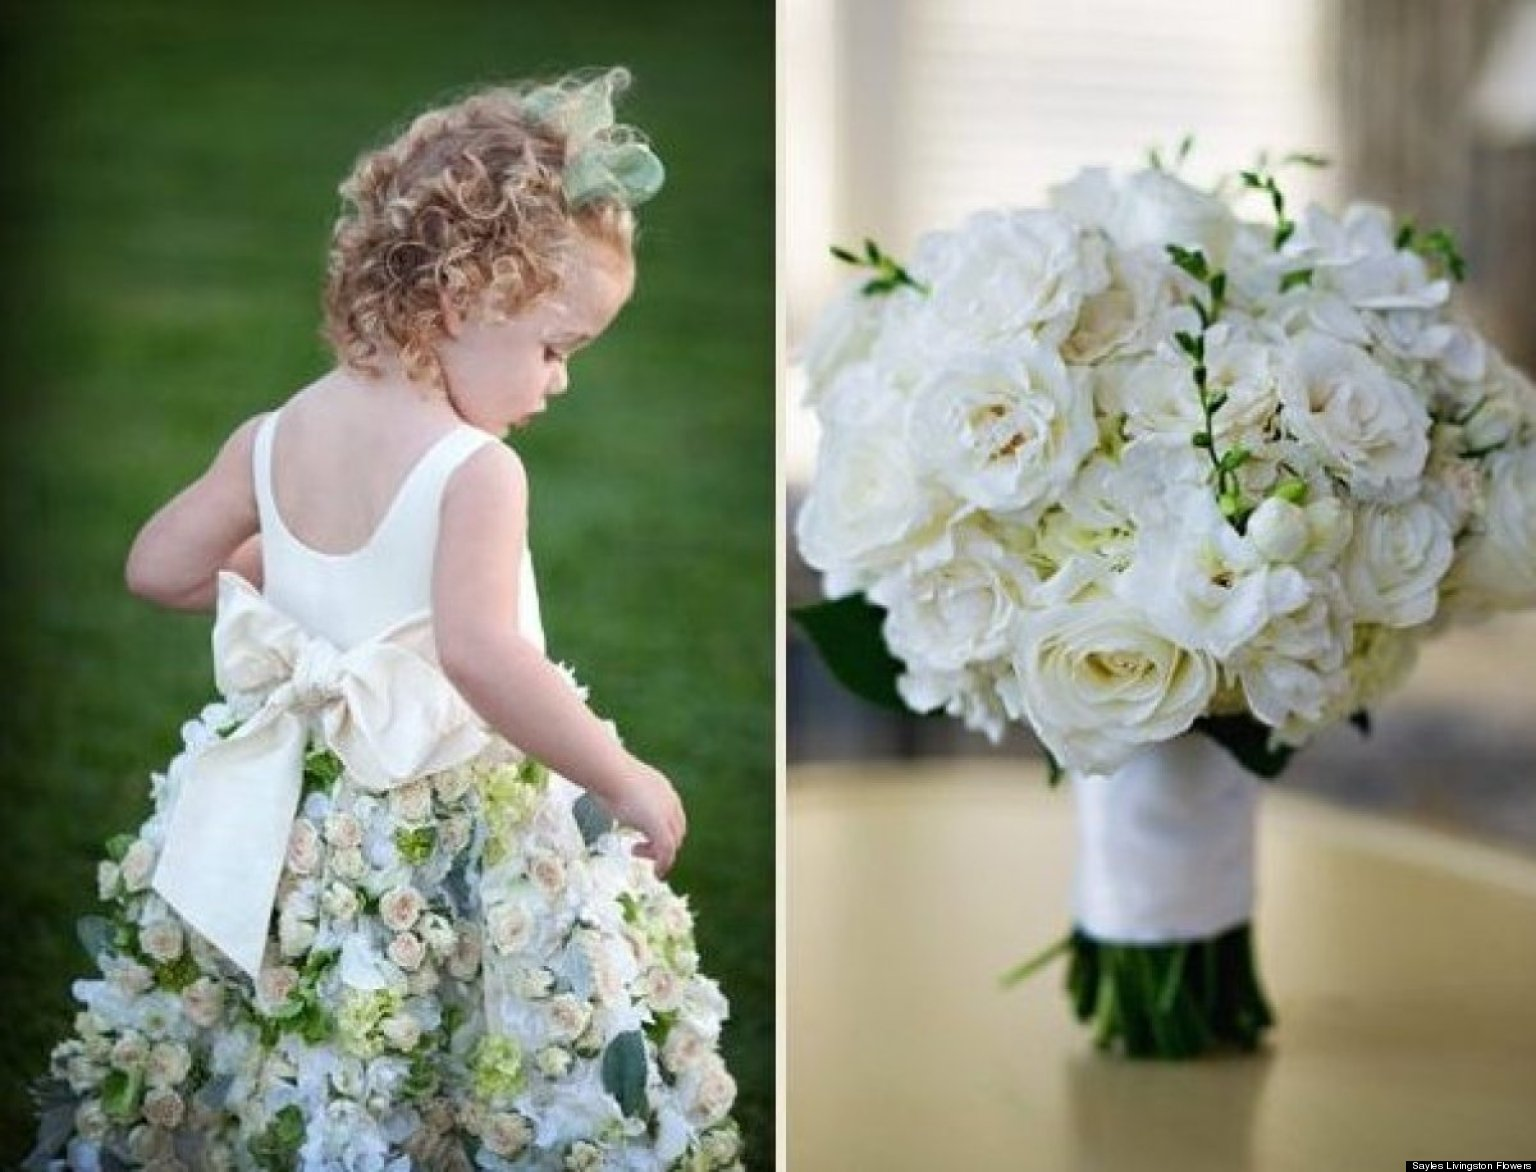 The New Modern: 8 Wedding Flower Trends And Ideas For 2013